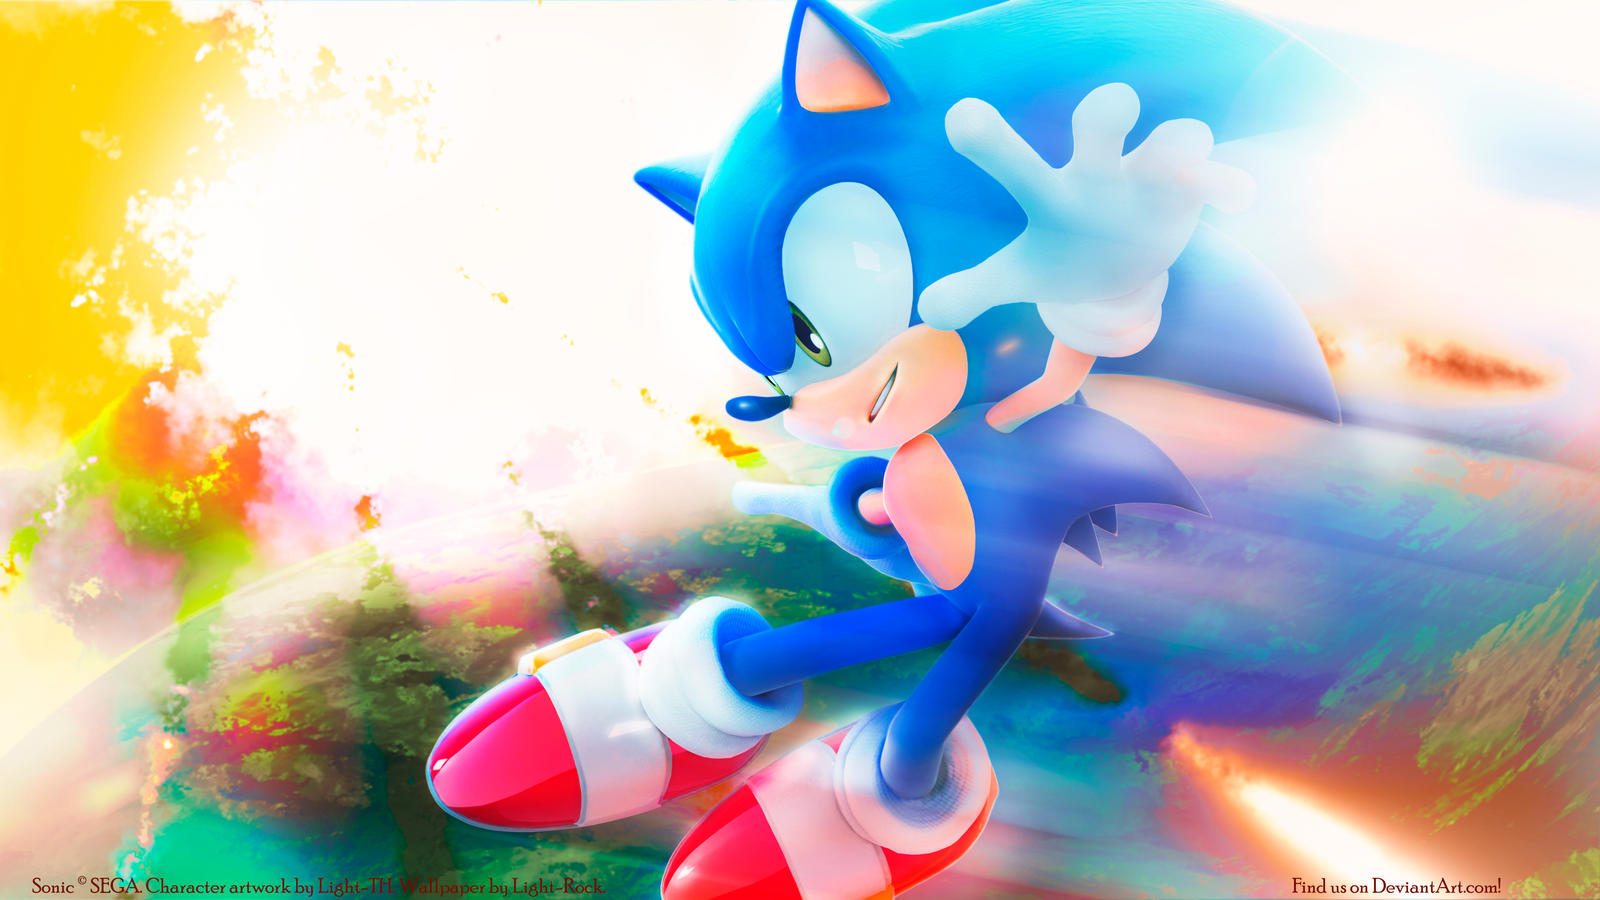 Sonic The Hedgehog 921 By Light Rock